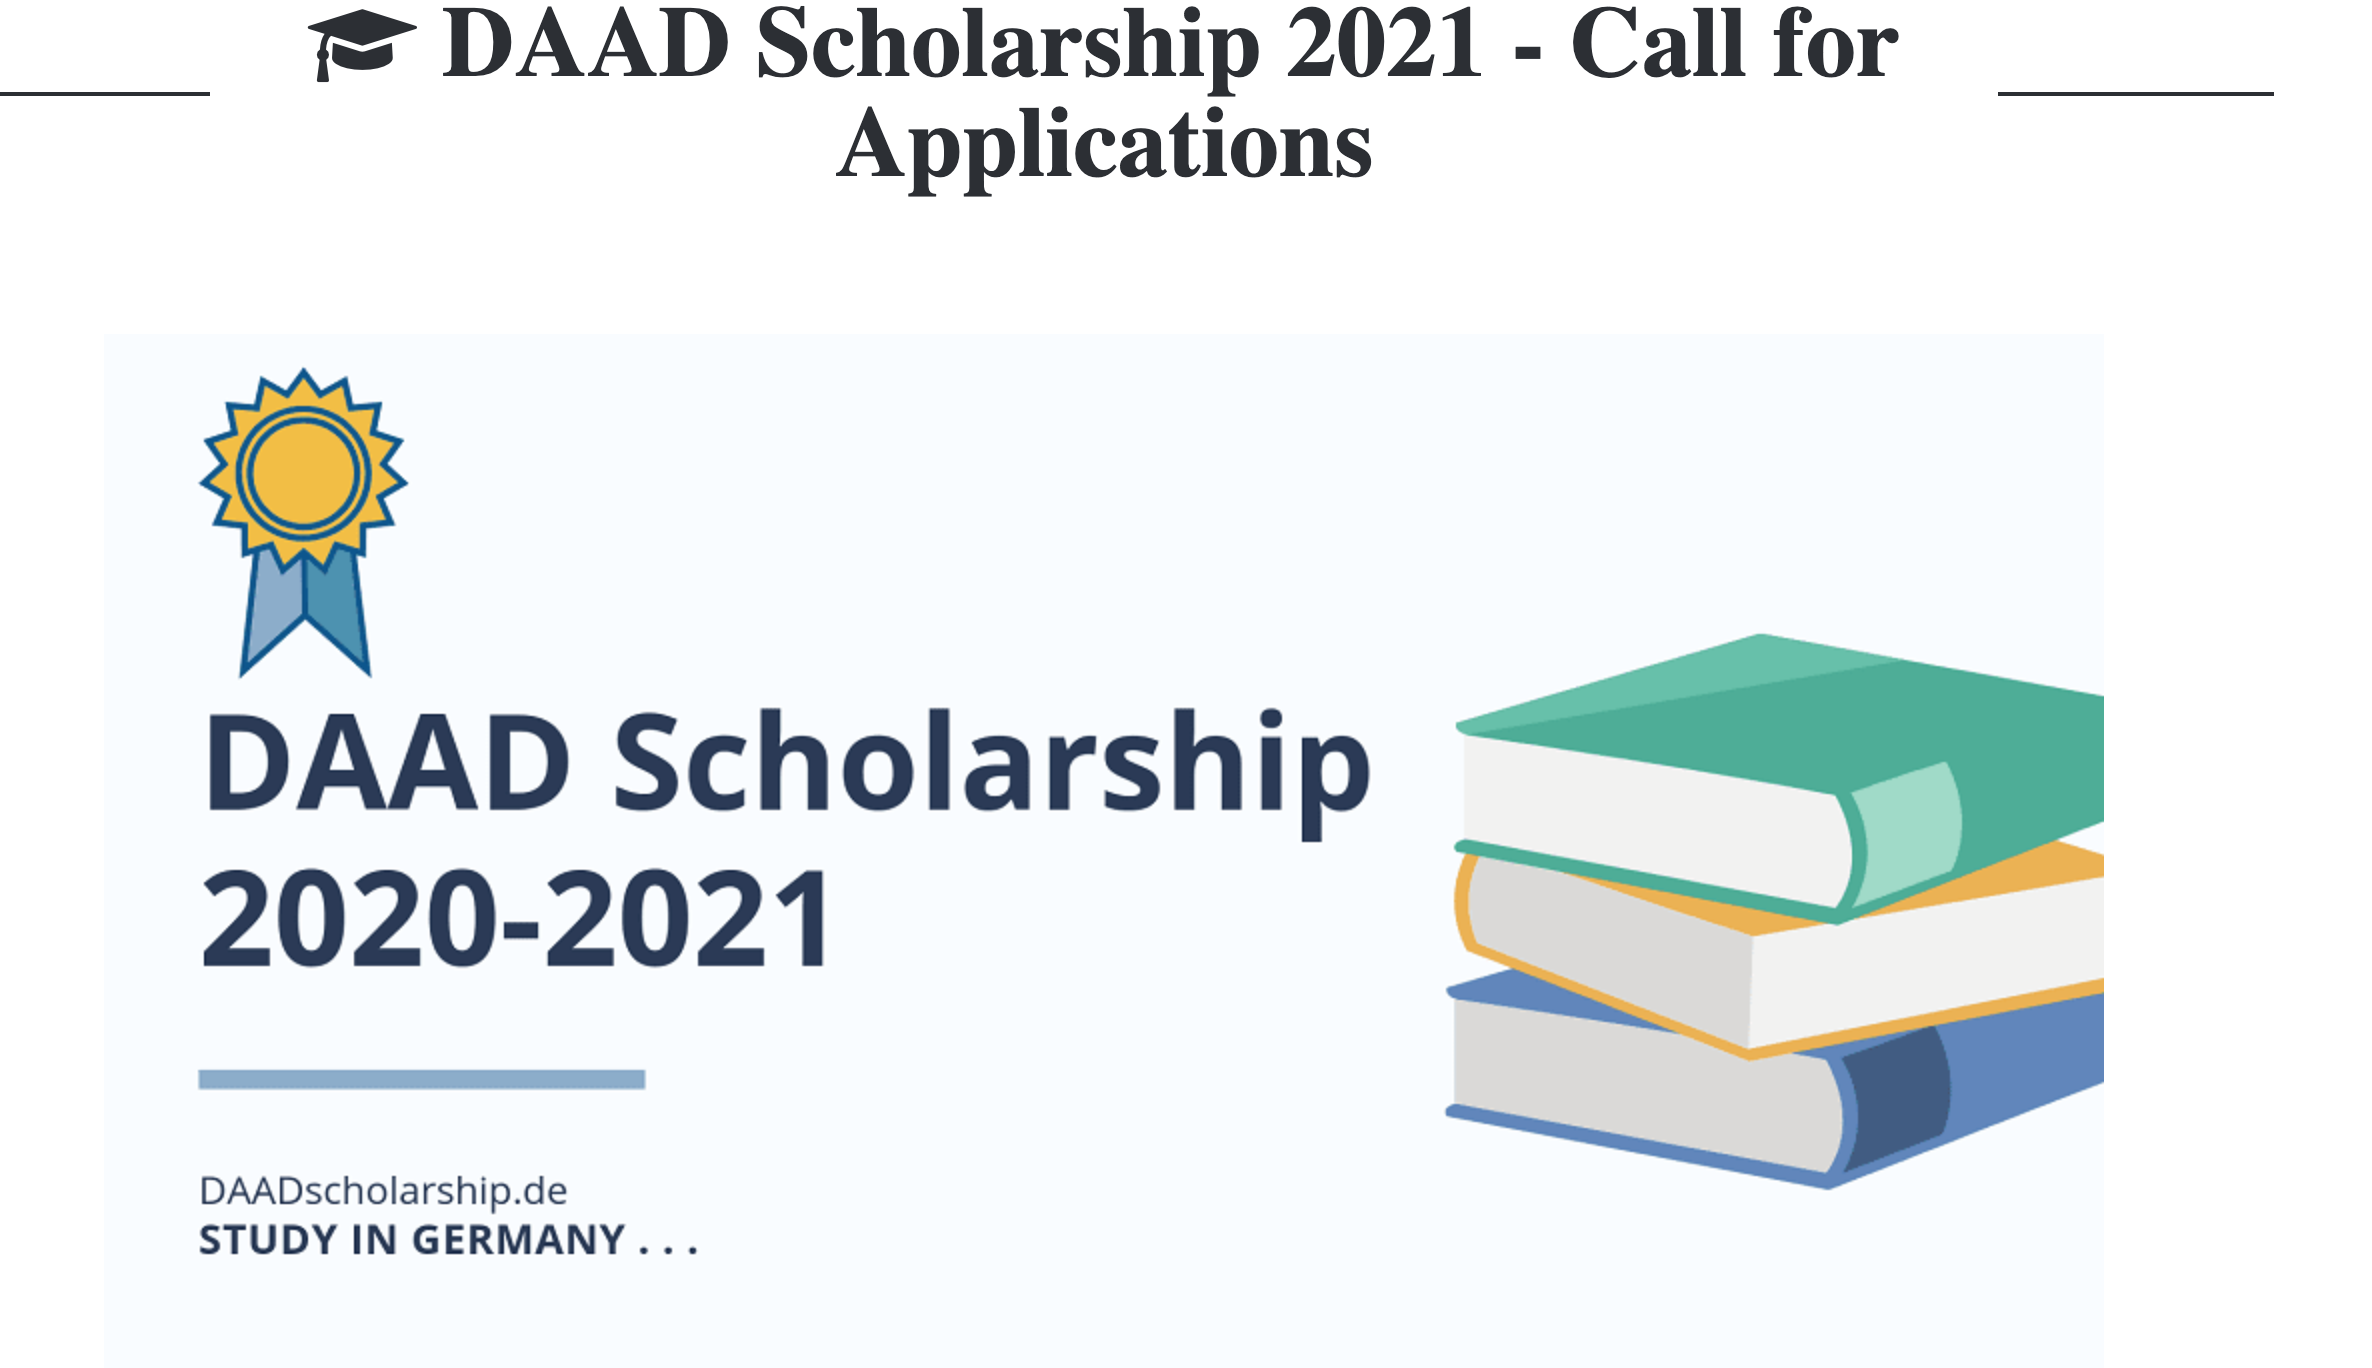 DAAD Scholarship 2021 - Call for Applications to Study in Germany ...